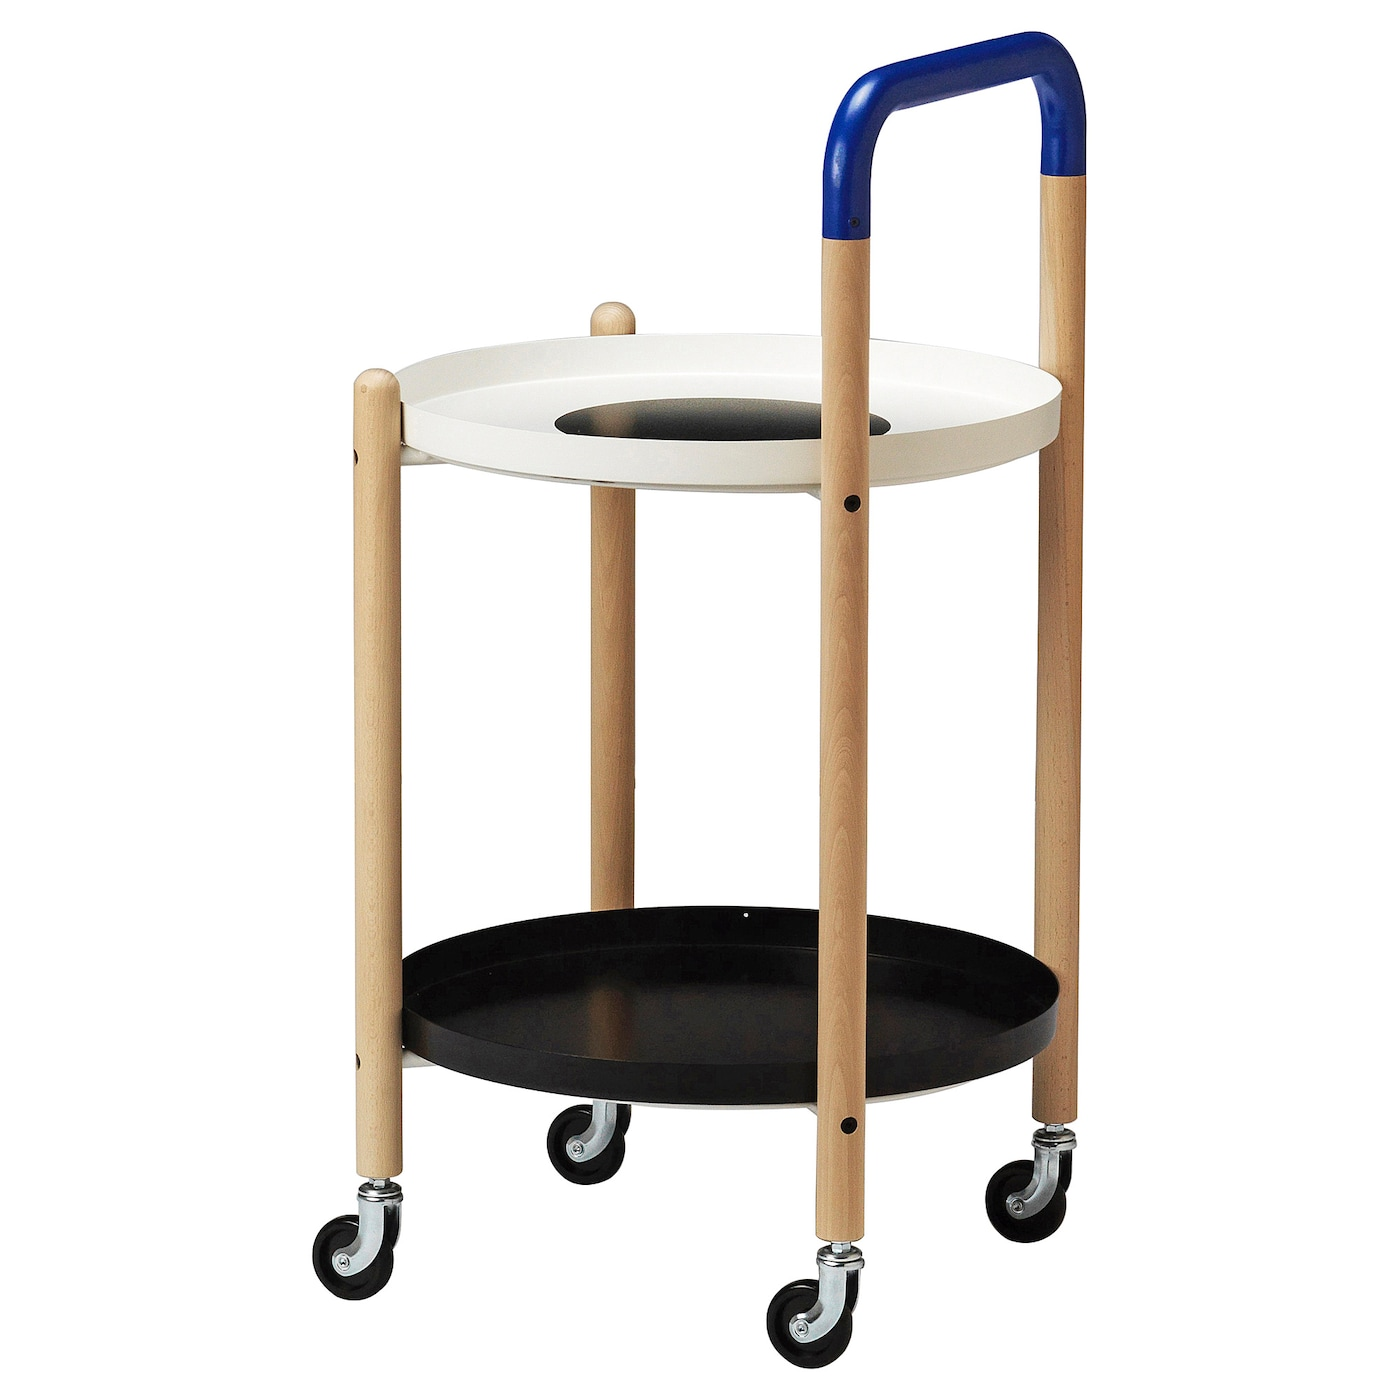 IKEA FÖRNYAD side table on castors Wheels make it easy to move.